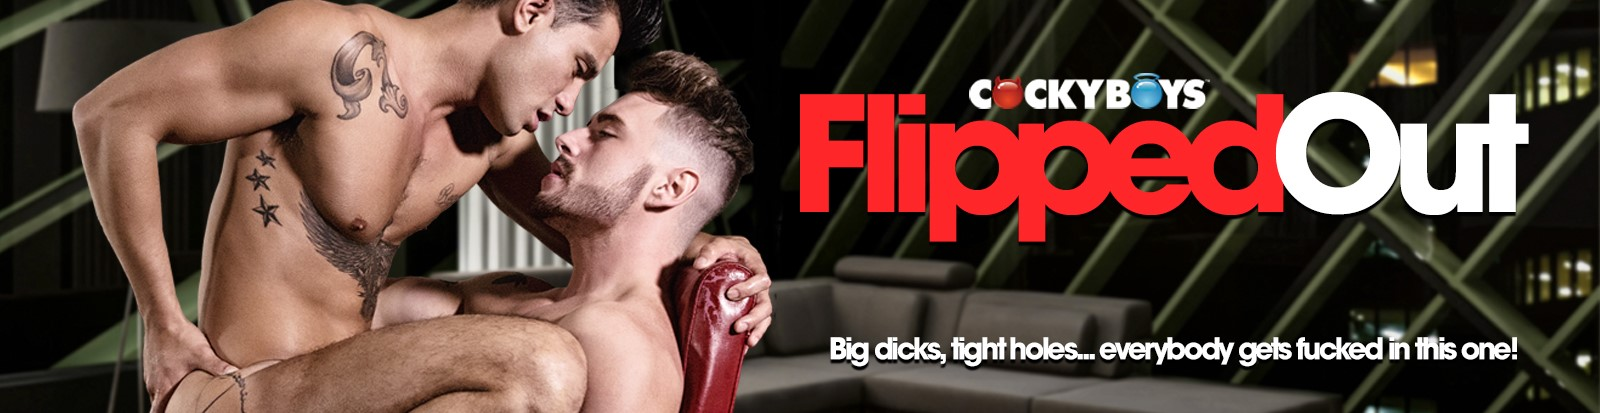 Flipped Out carousel Banner